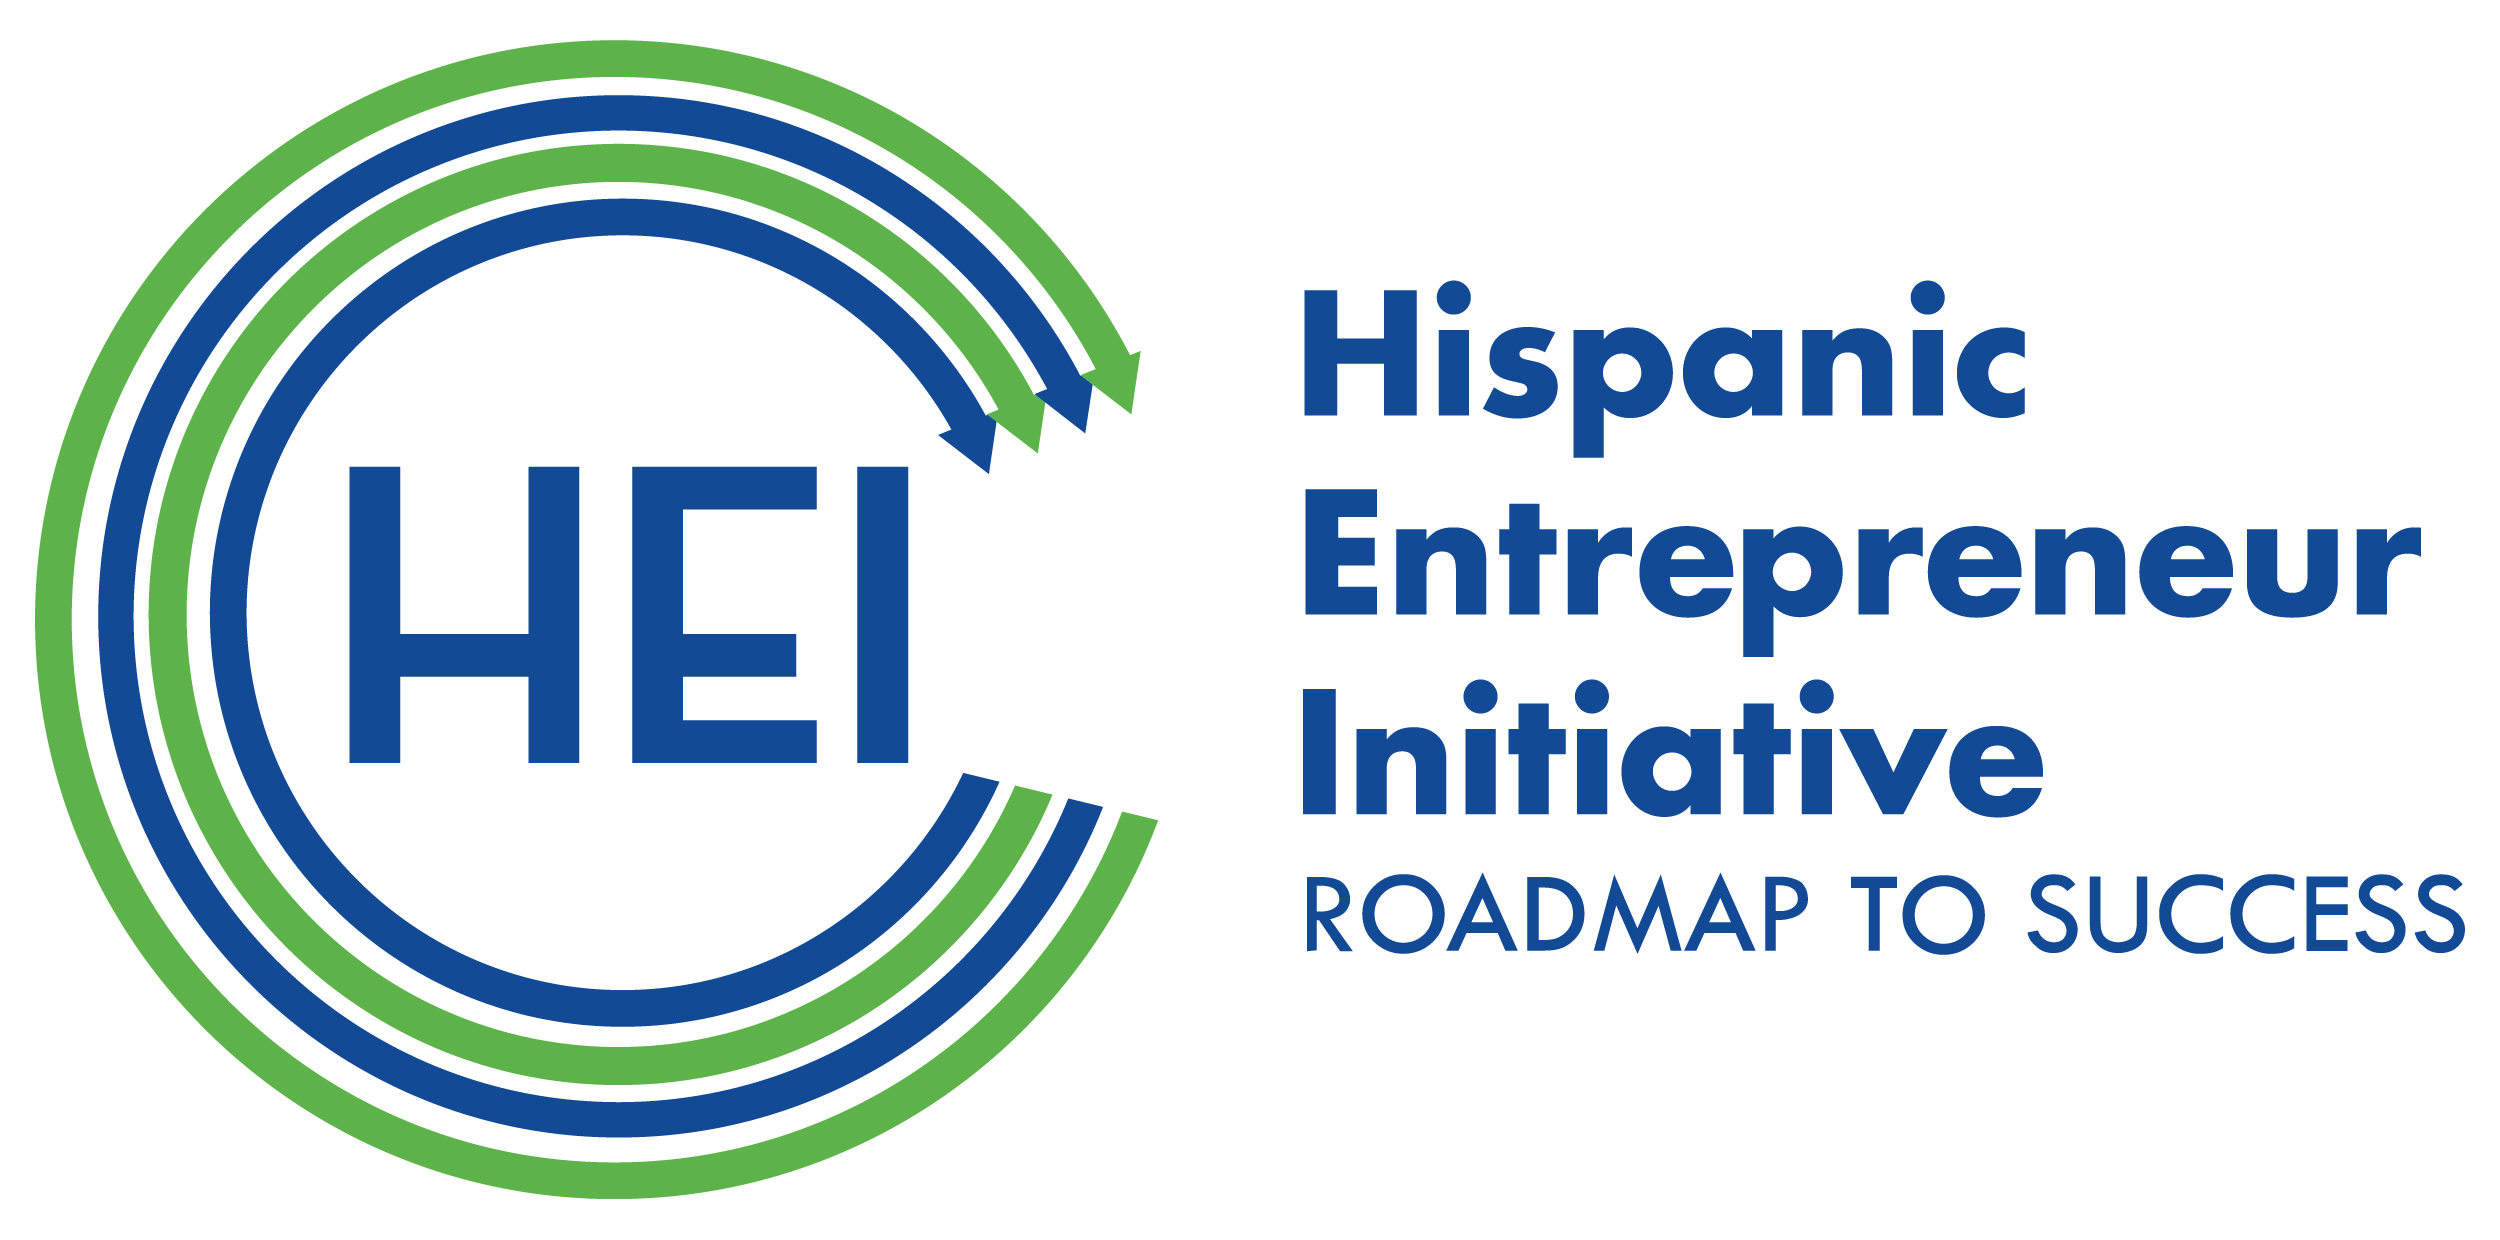 Hispanic Entrepreneur Initiative